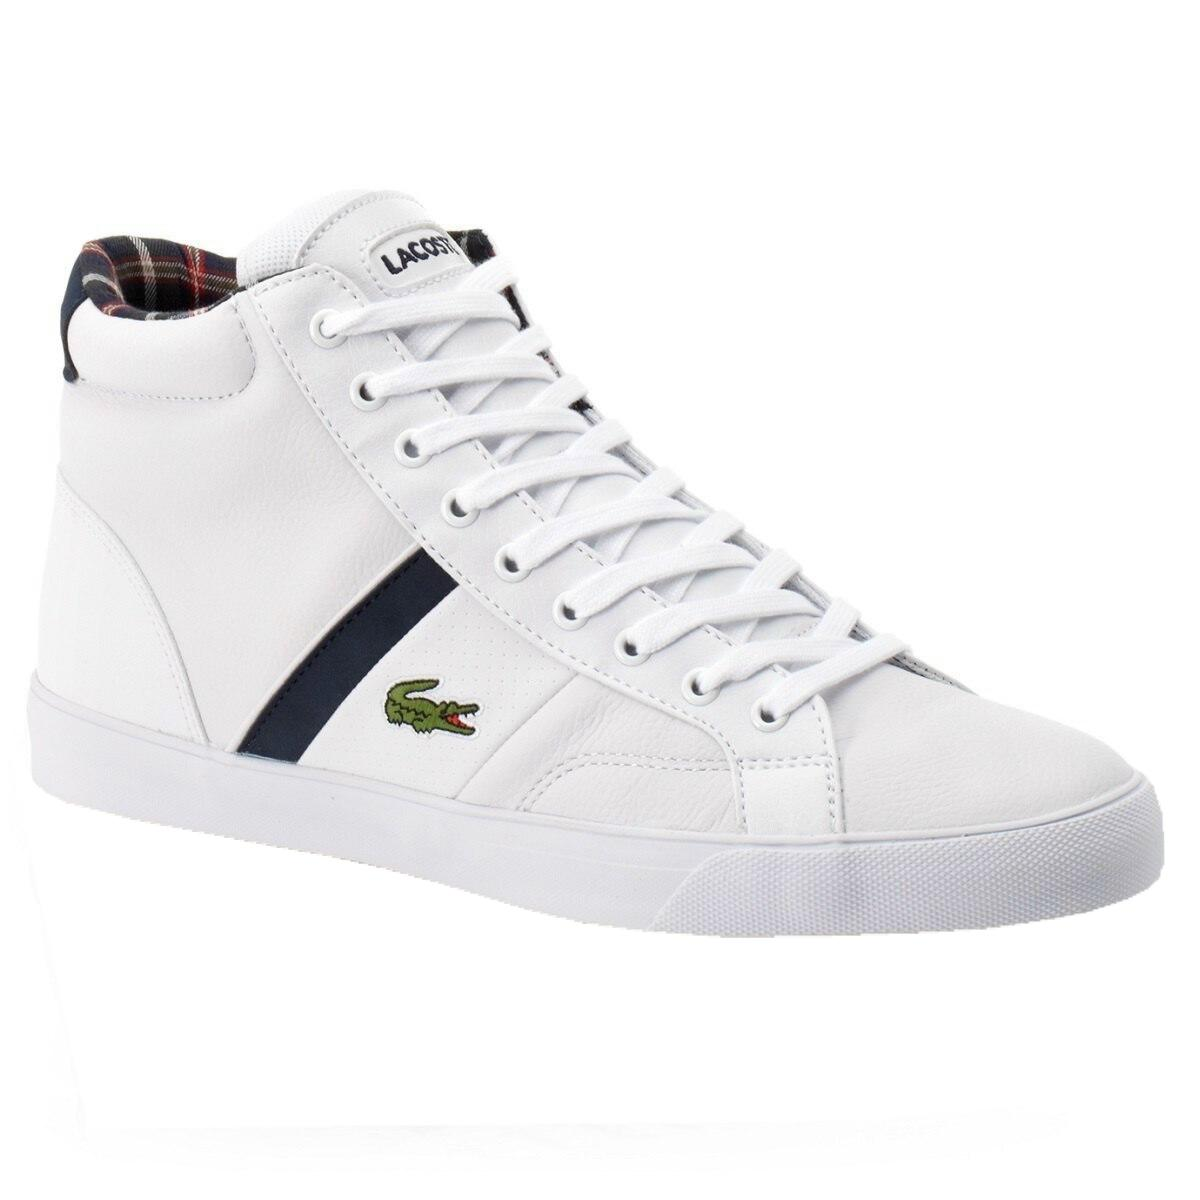 lacoste fairlead mid lup herren schuhe high top sneakers. Black Bedroom Furniture Sets. Home Design Ideas